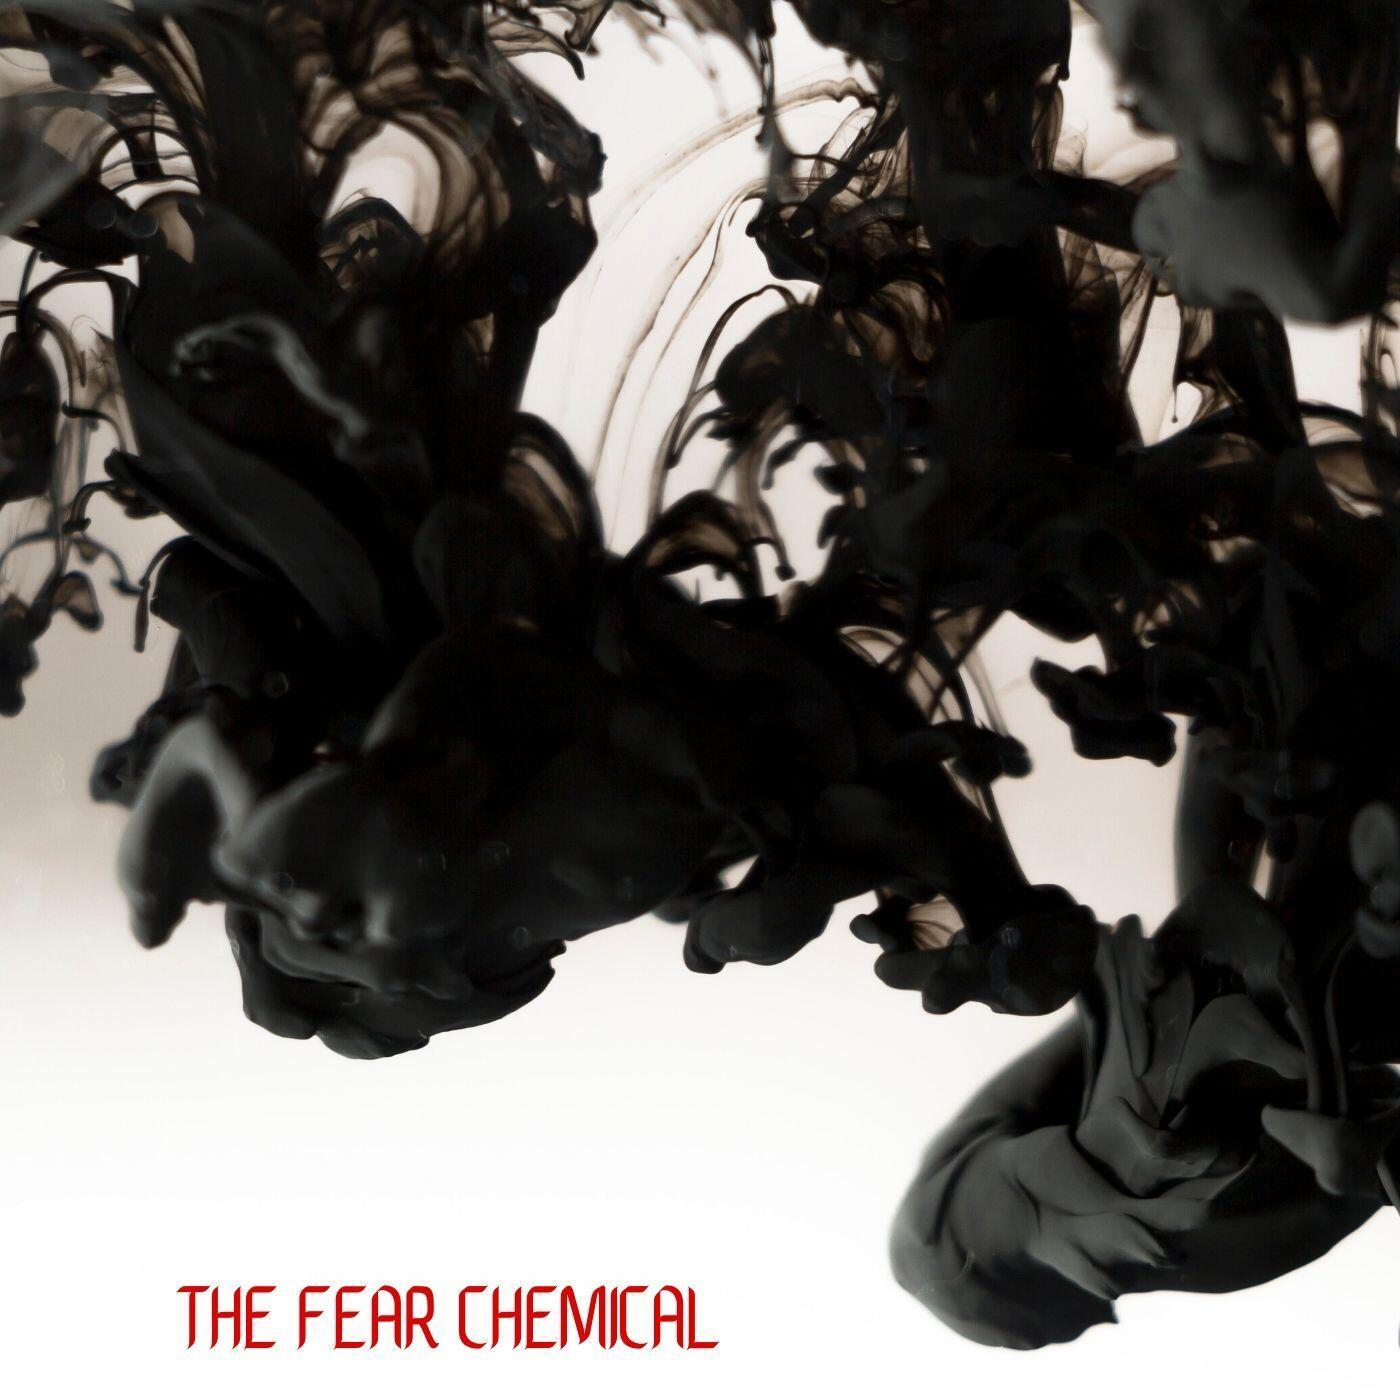 100: The Fear Chemical